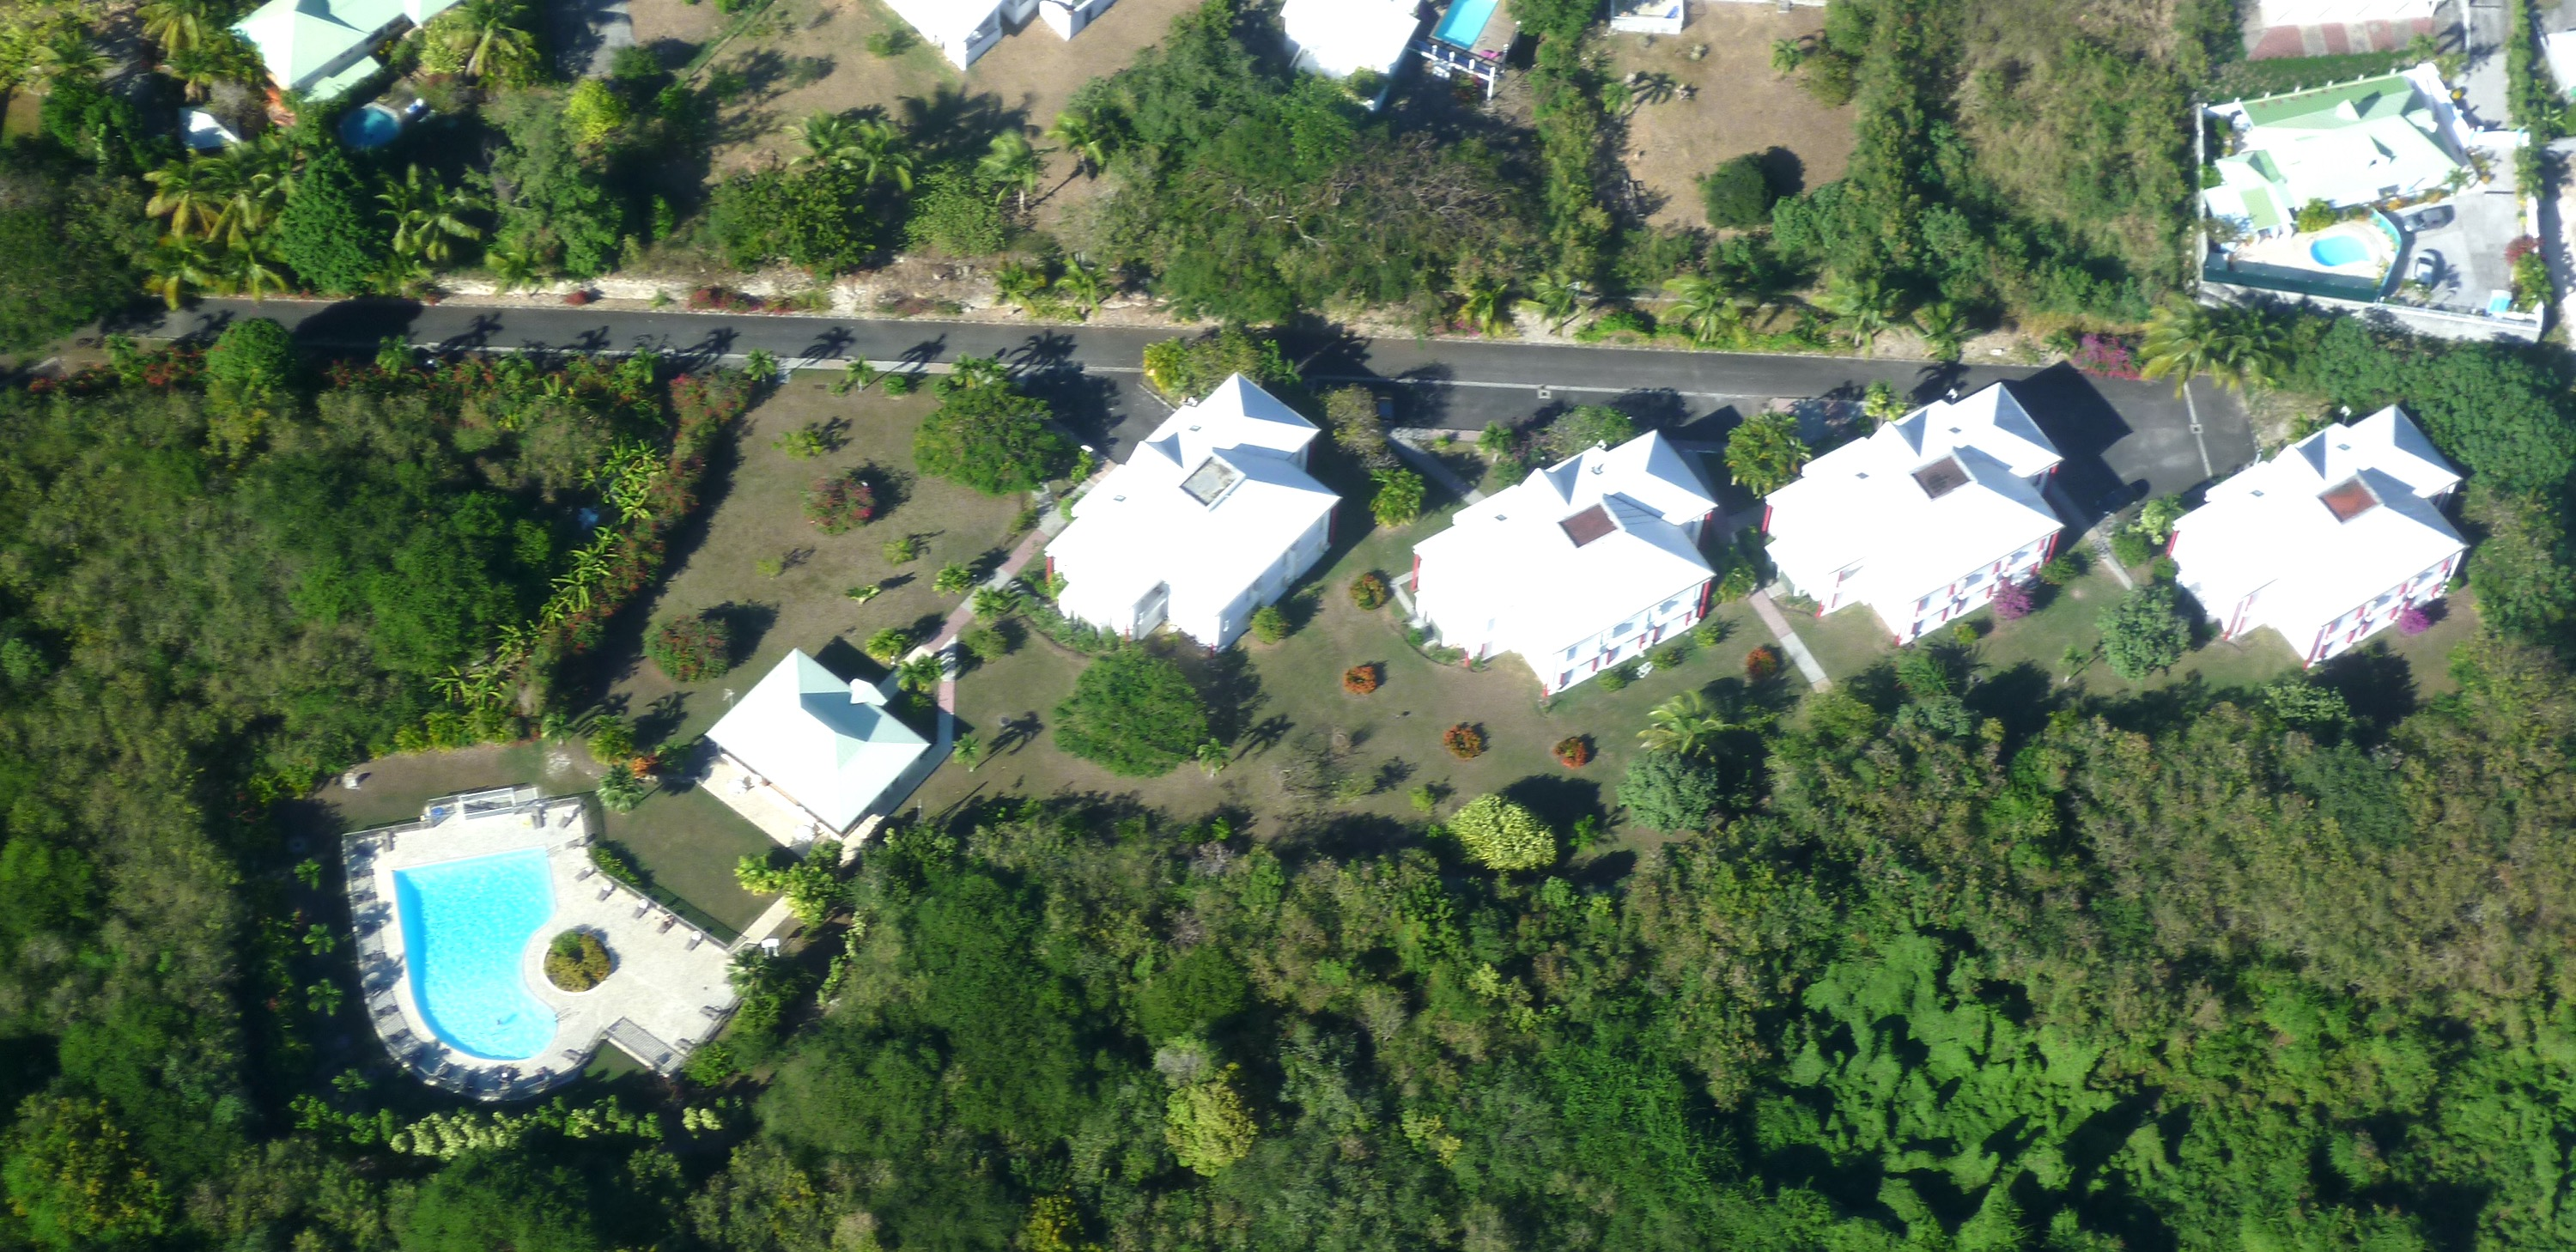 Residence-Le-Vallon-Guadeloupe-Vue-Aerienne